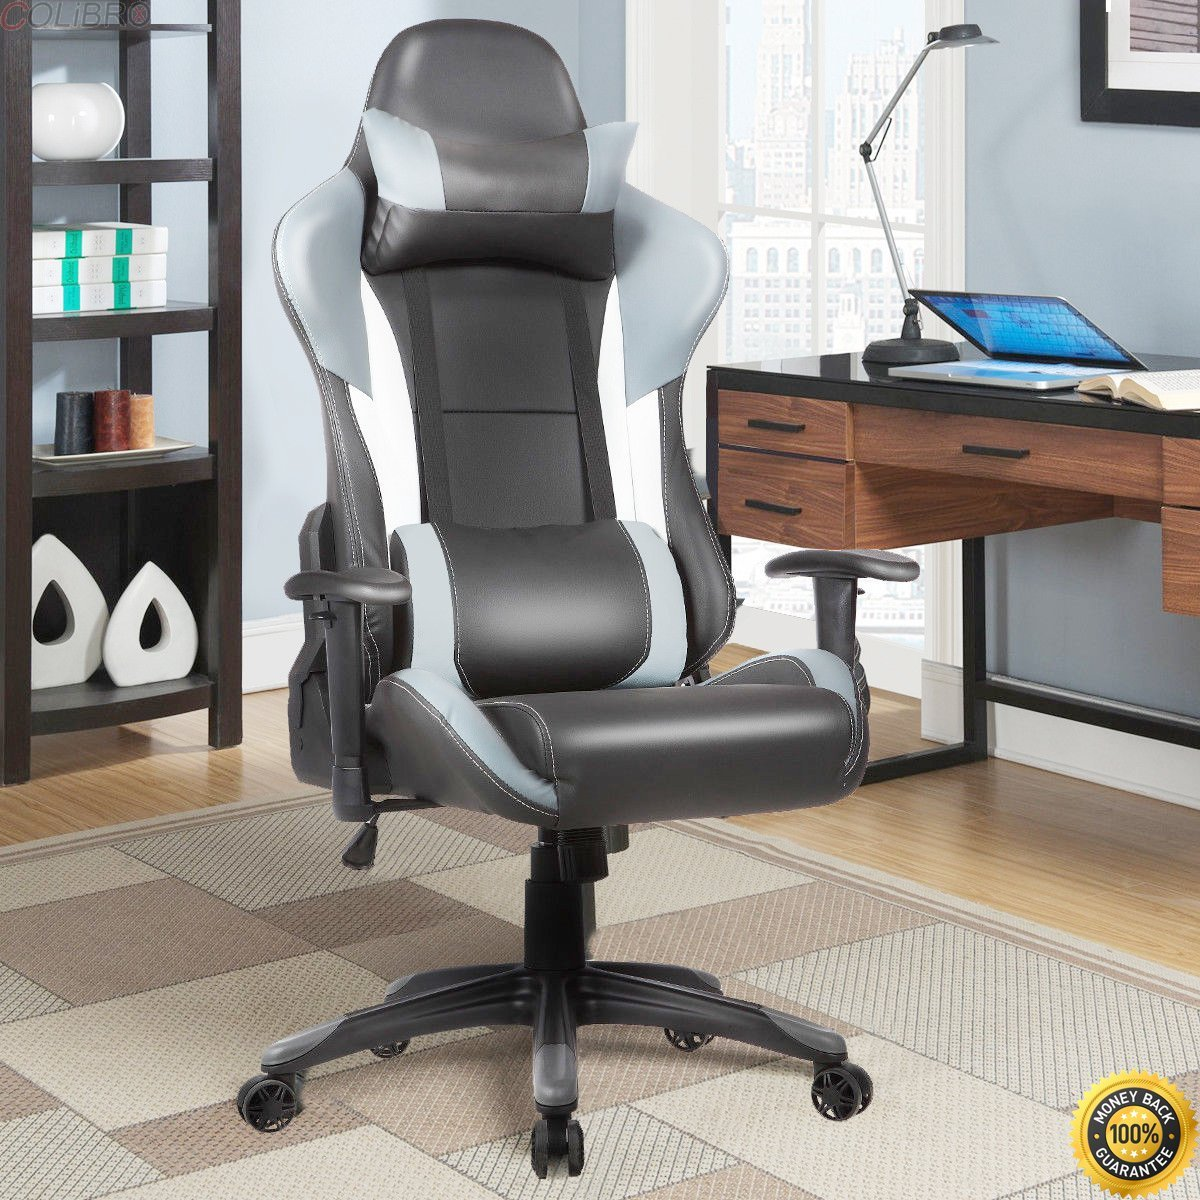 Cheap Tesco Gaming Chairs, find Tesco Gaming Chairs deals on line